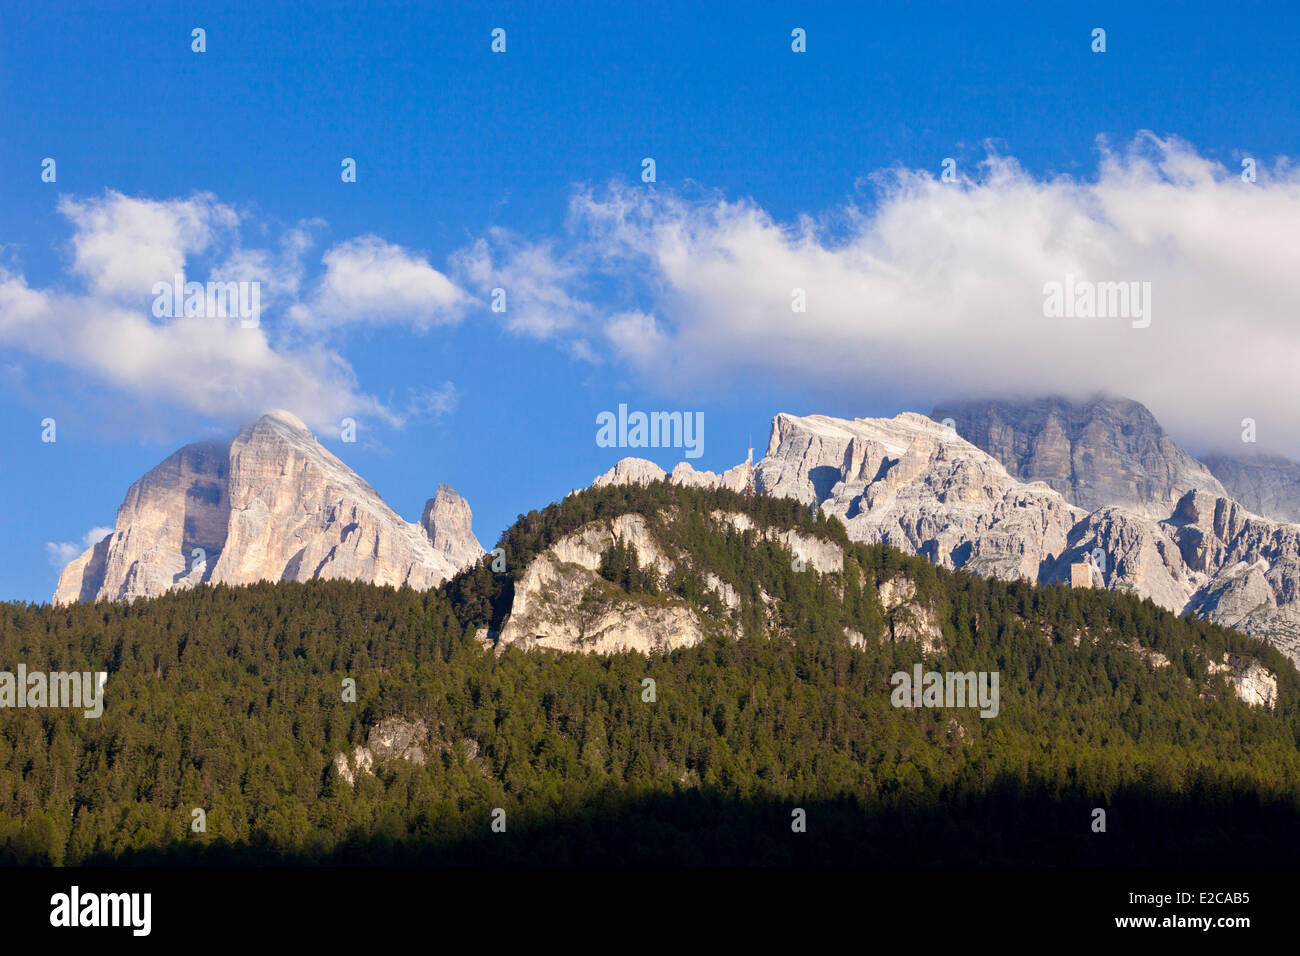 Italy, Venetia, province of Belluno, Dolomites, listed as World Heritage by UNESCO, peaks near Cortina d'Ampezzo - Stock Image